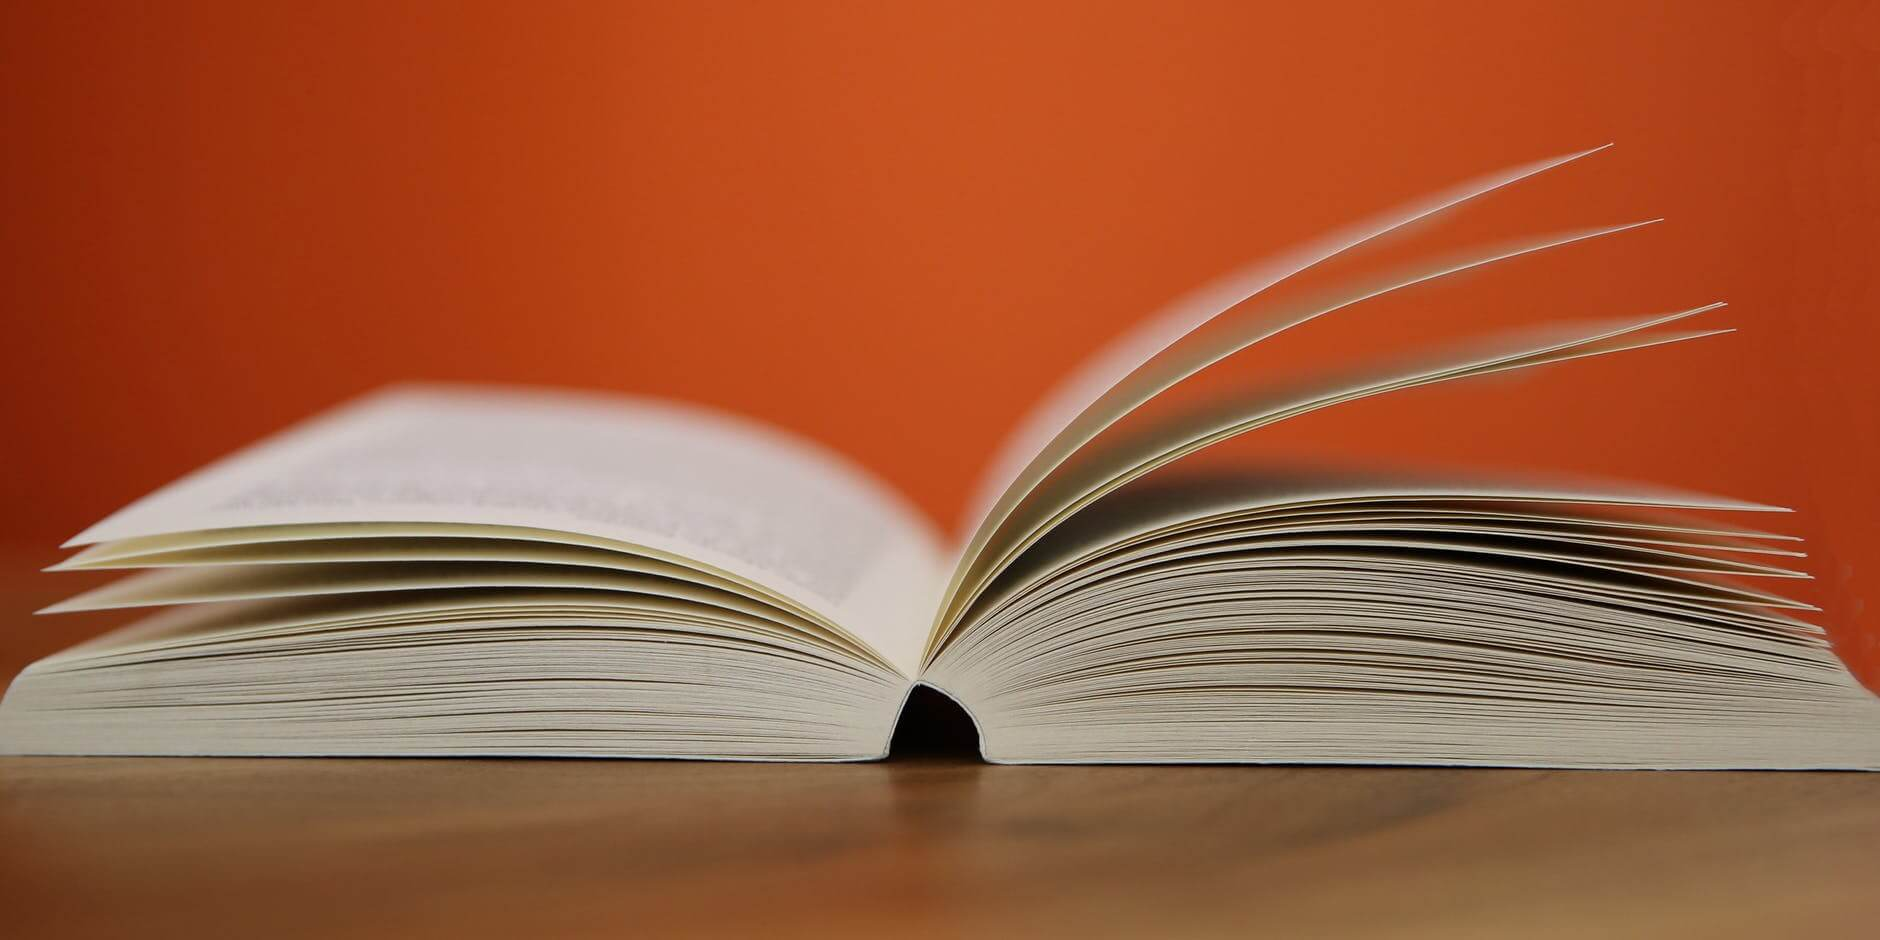 A book that individuals can read while staying inside